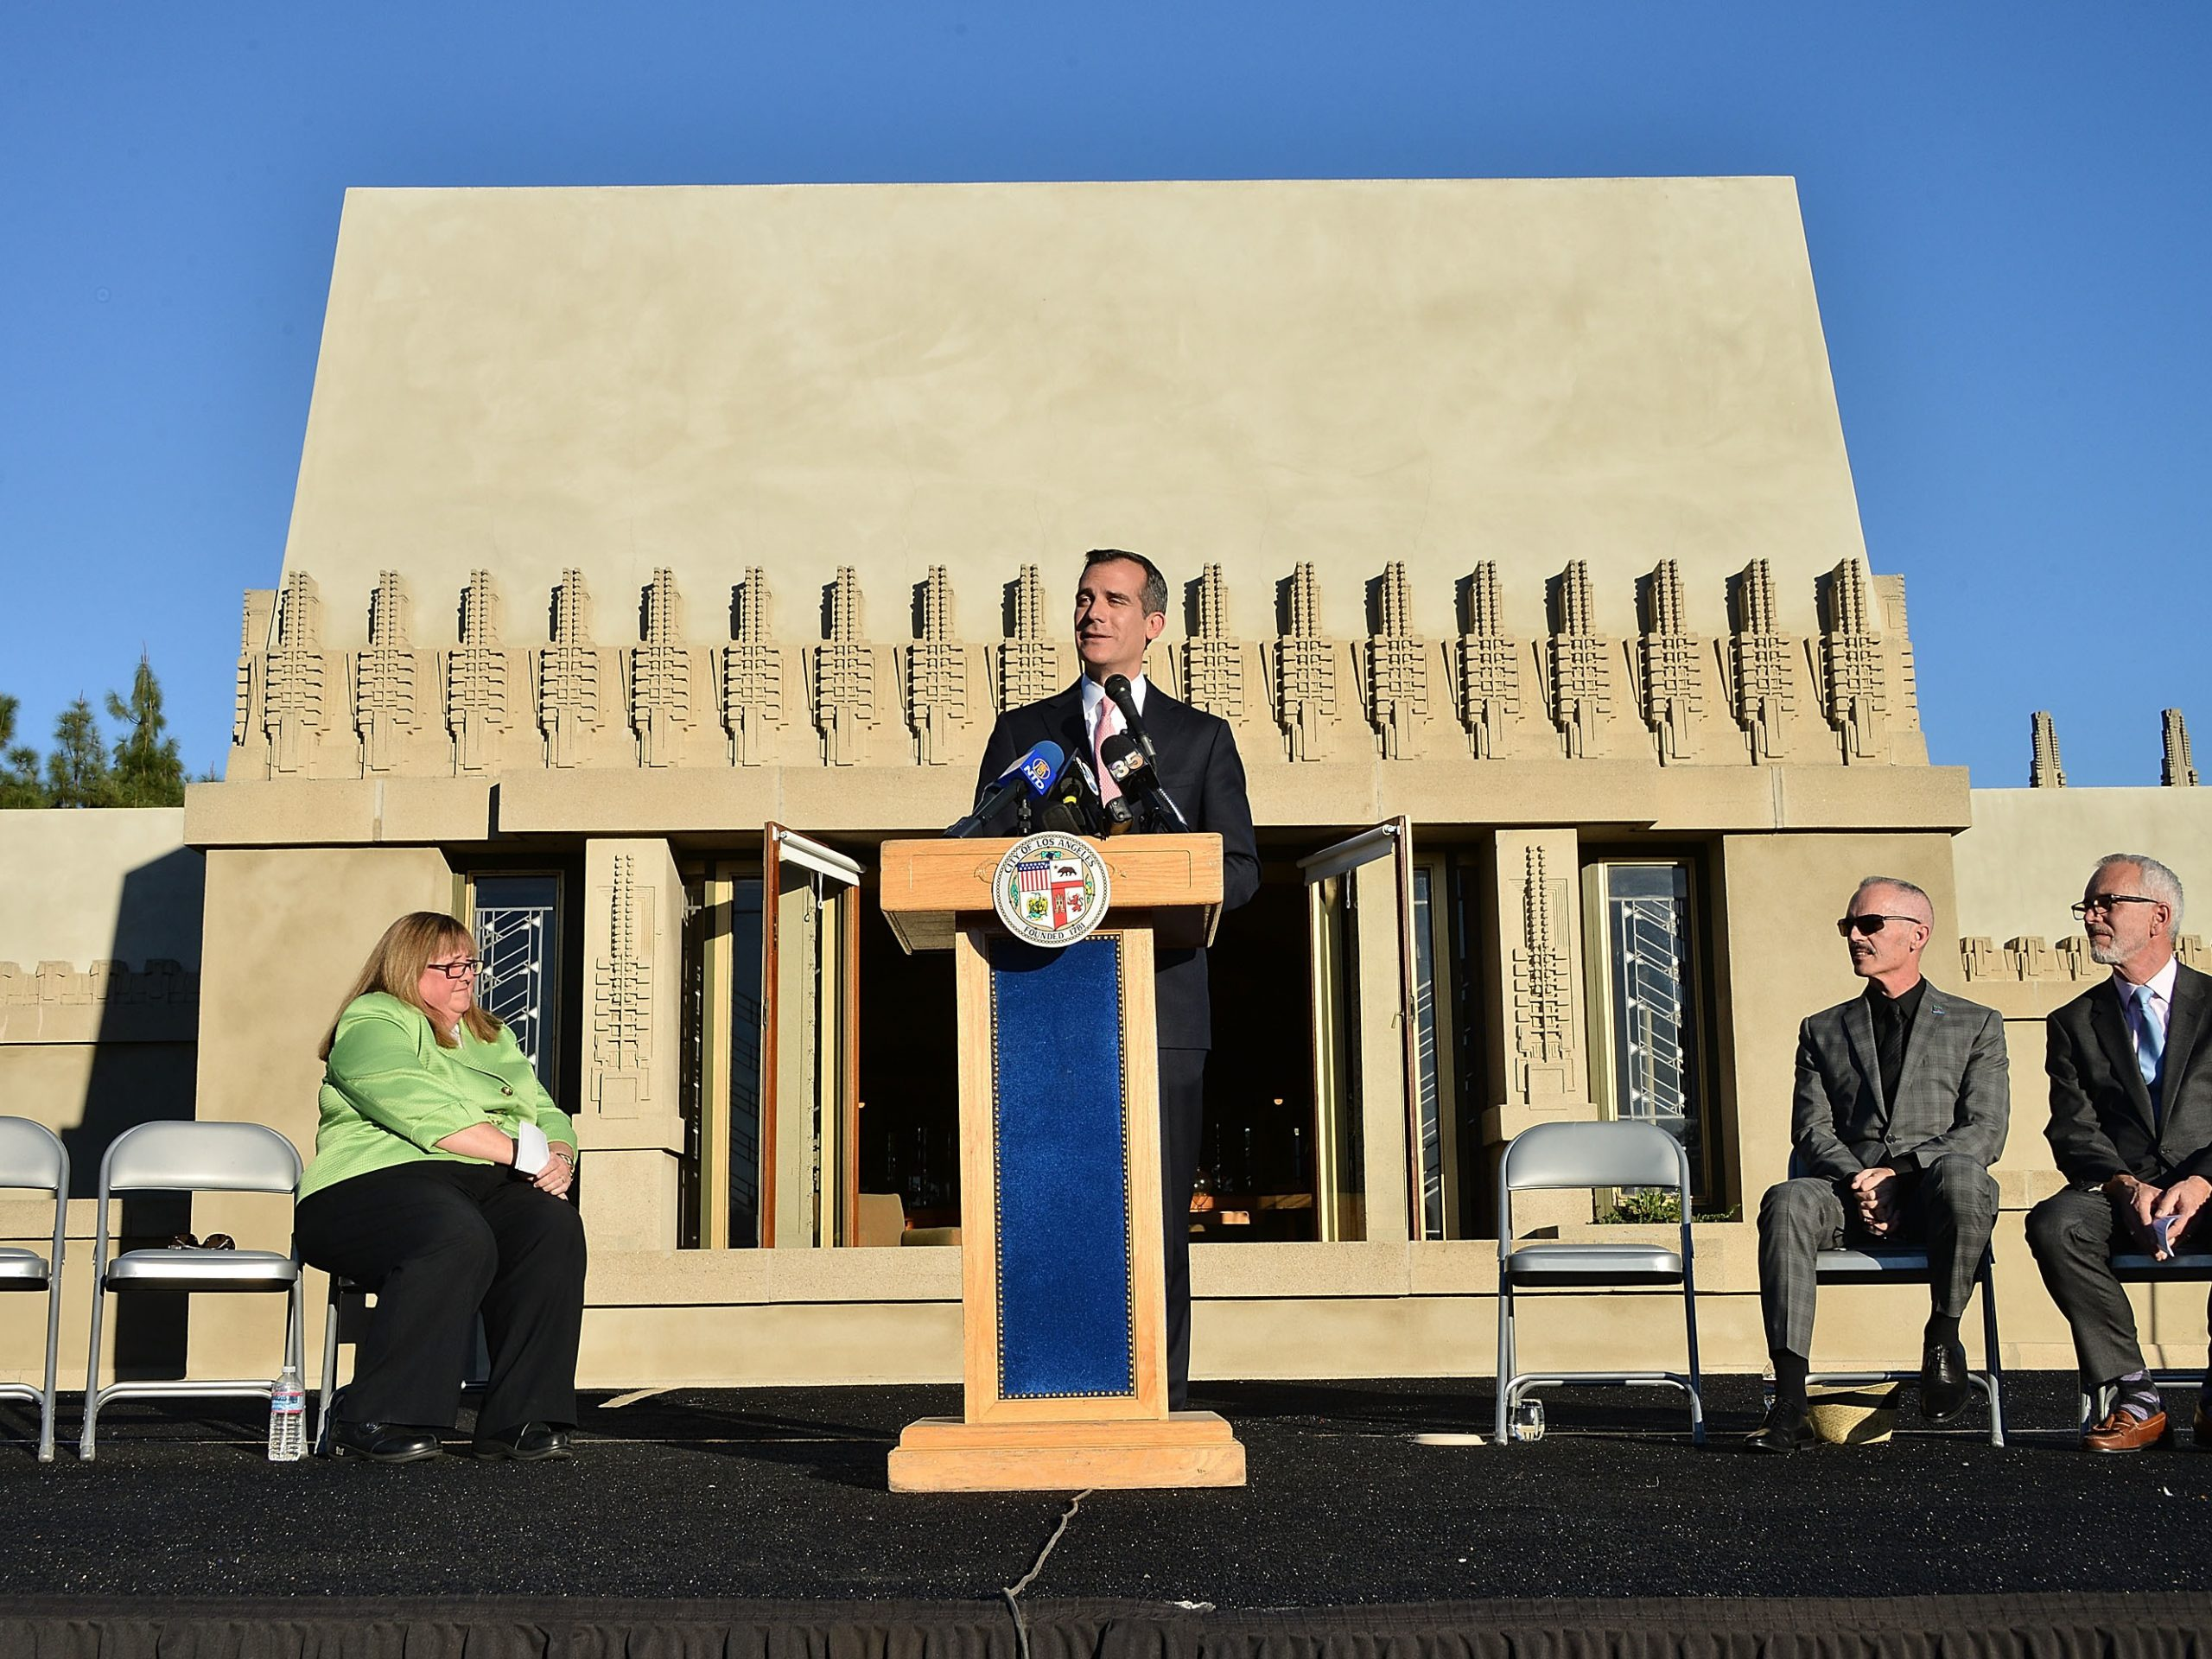 Los Angeles Mayor Eric Garcetti attends the ribbon-cutting ceremony for the re-opening of The Frank Lloyd Wright Hollyhock House on Feb. 13, 2015.